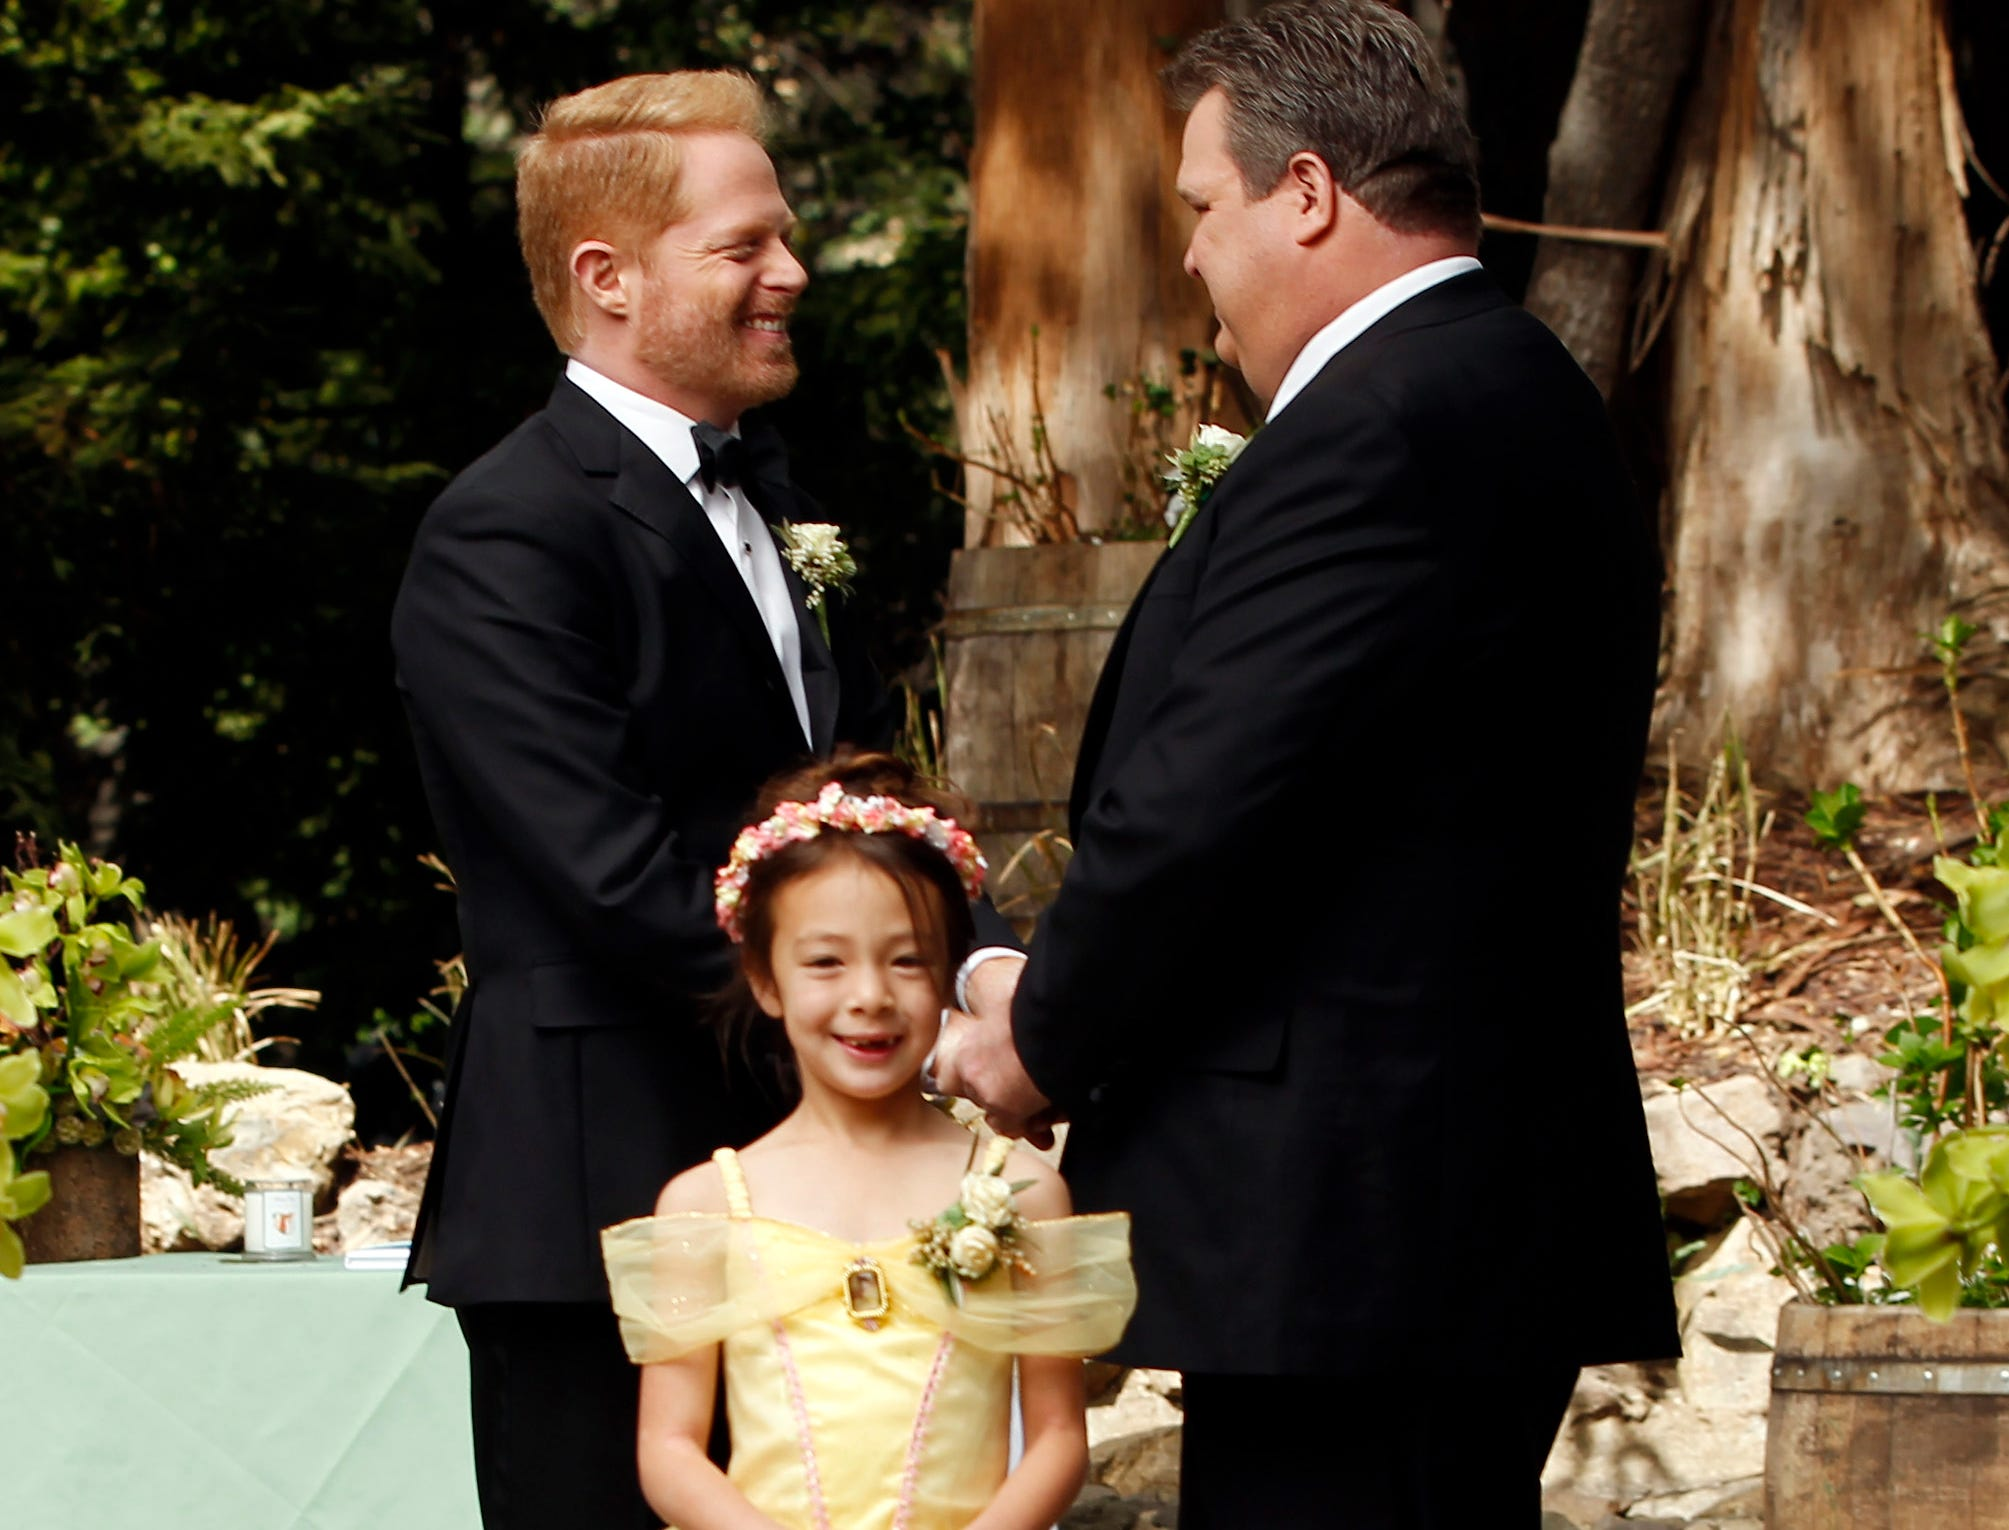 Aubrey Anderson-Emmons, Jesse Tyler Ferguson and Eric Stonestreet in season five, in which Mitch and Cam got married with their daughter, Lily, serving as flower girl.